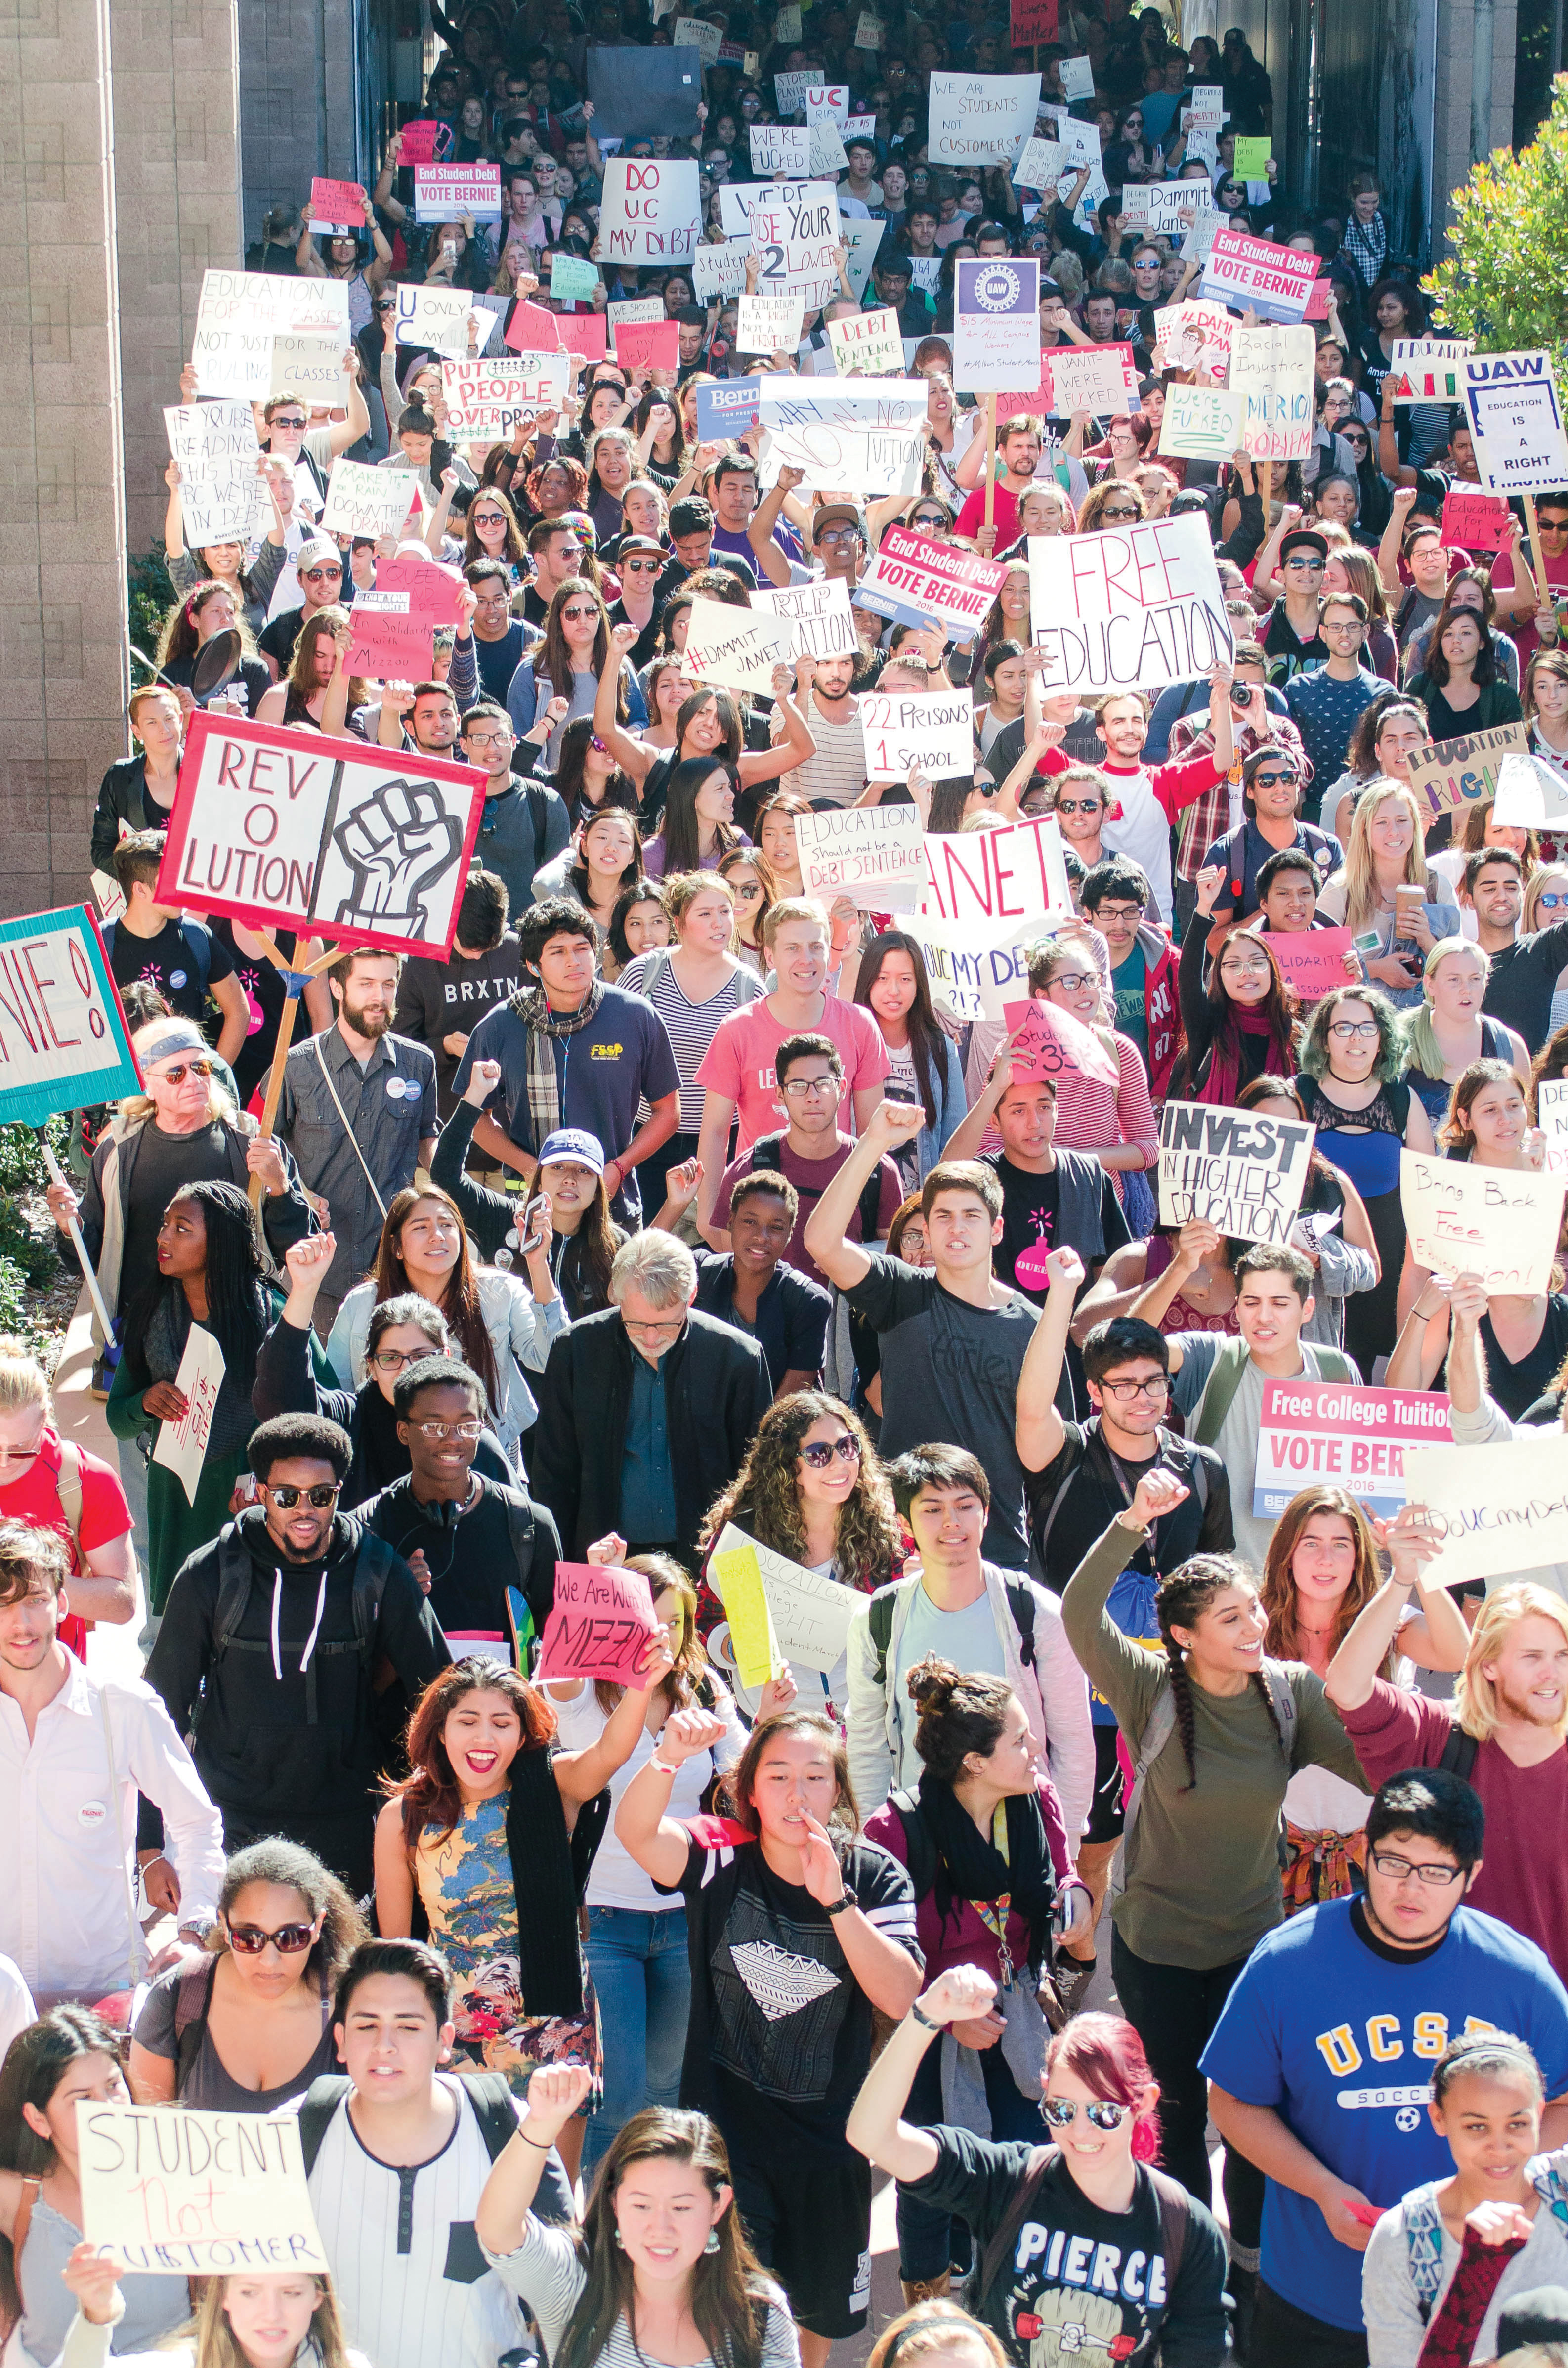 millionstudentmarch students rally in support of higher education